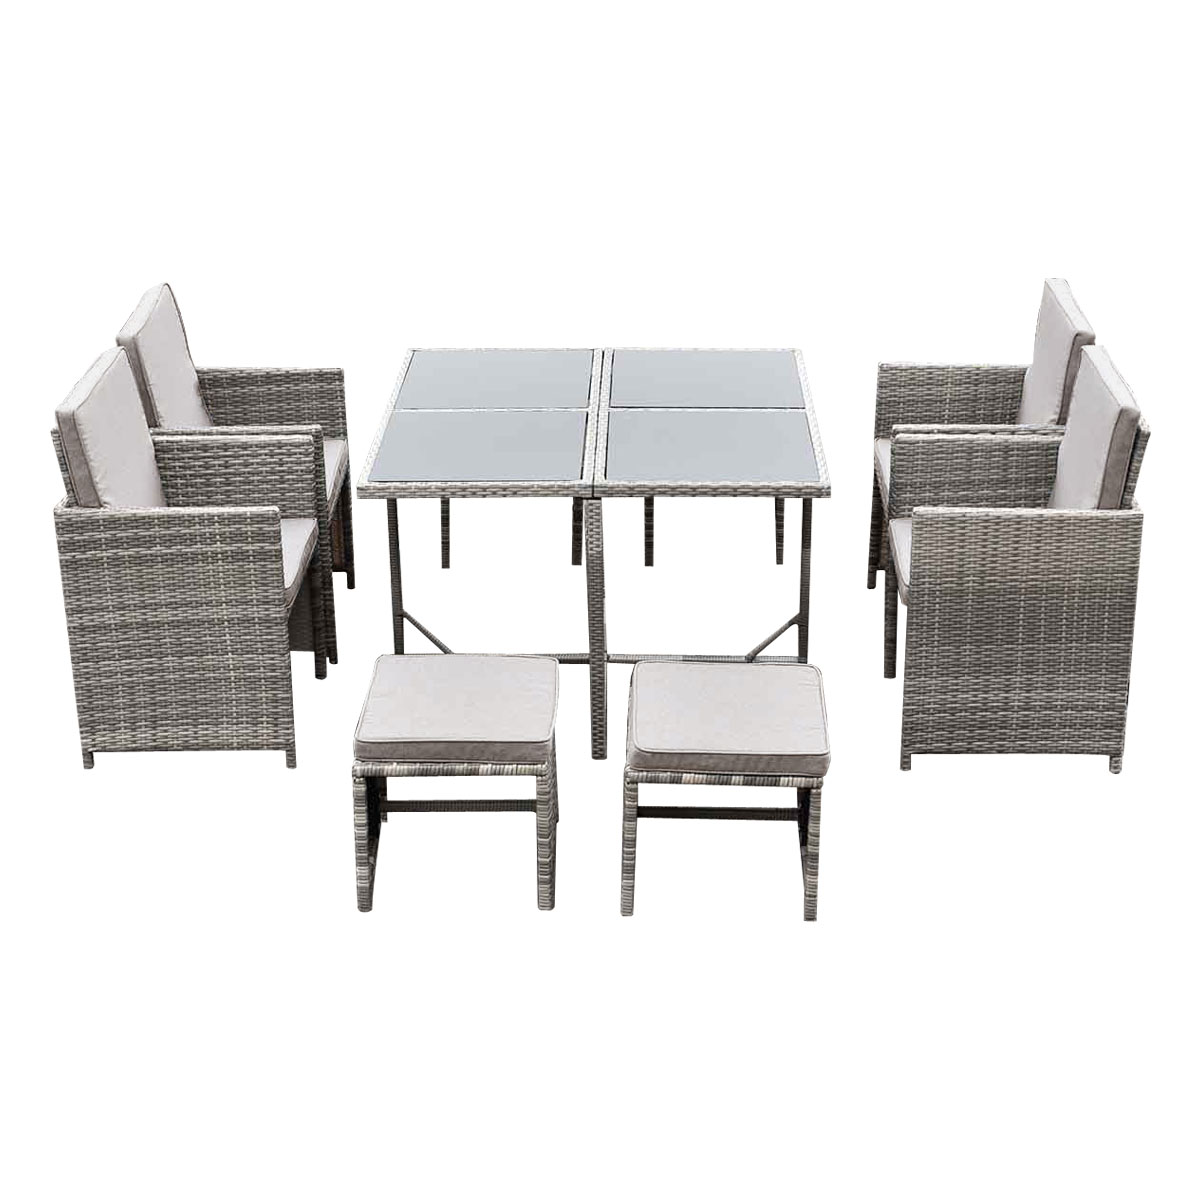 Outdoor Dining Table Set Furniture Garden Patio Pool